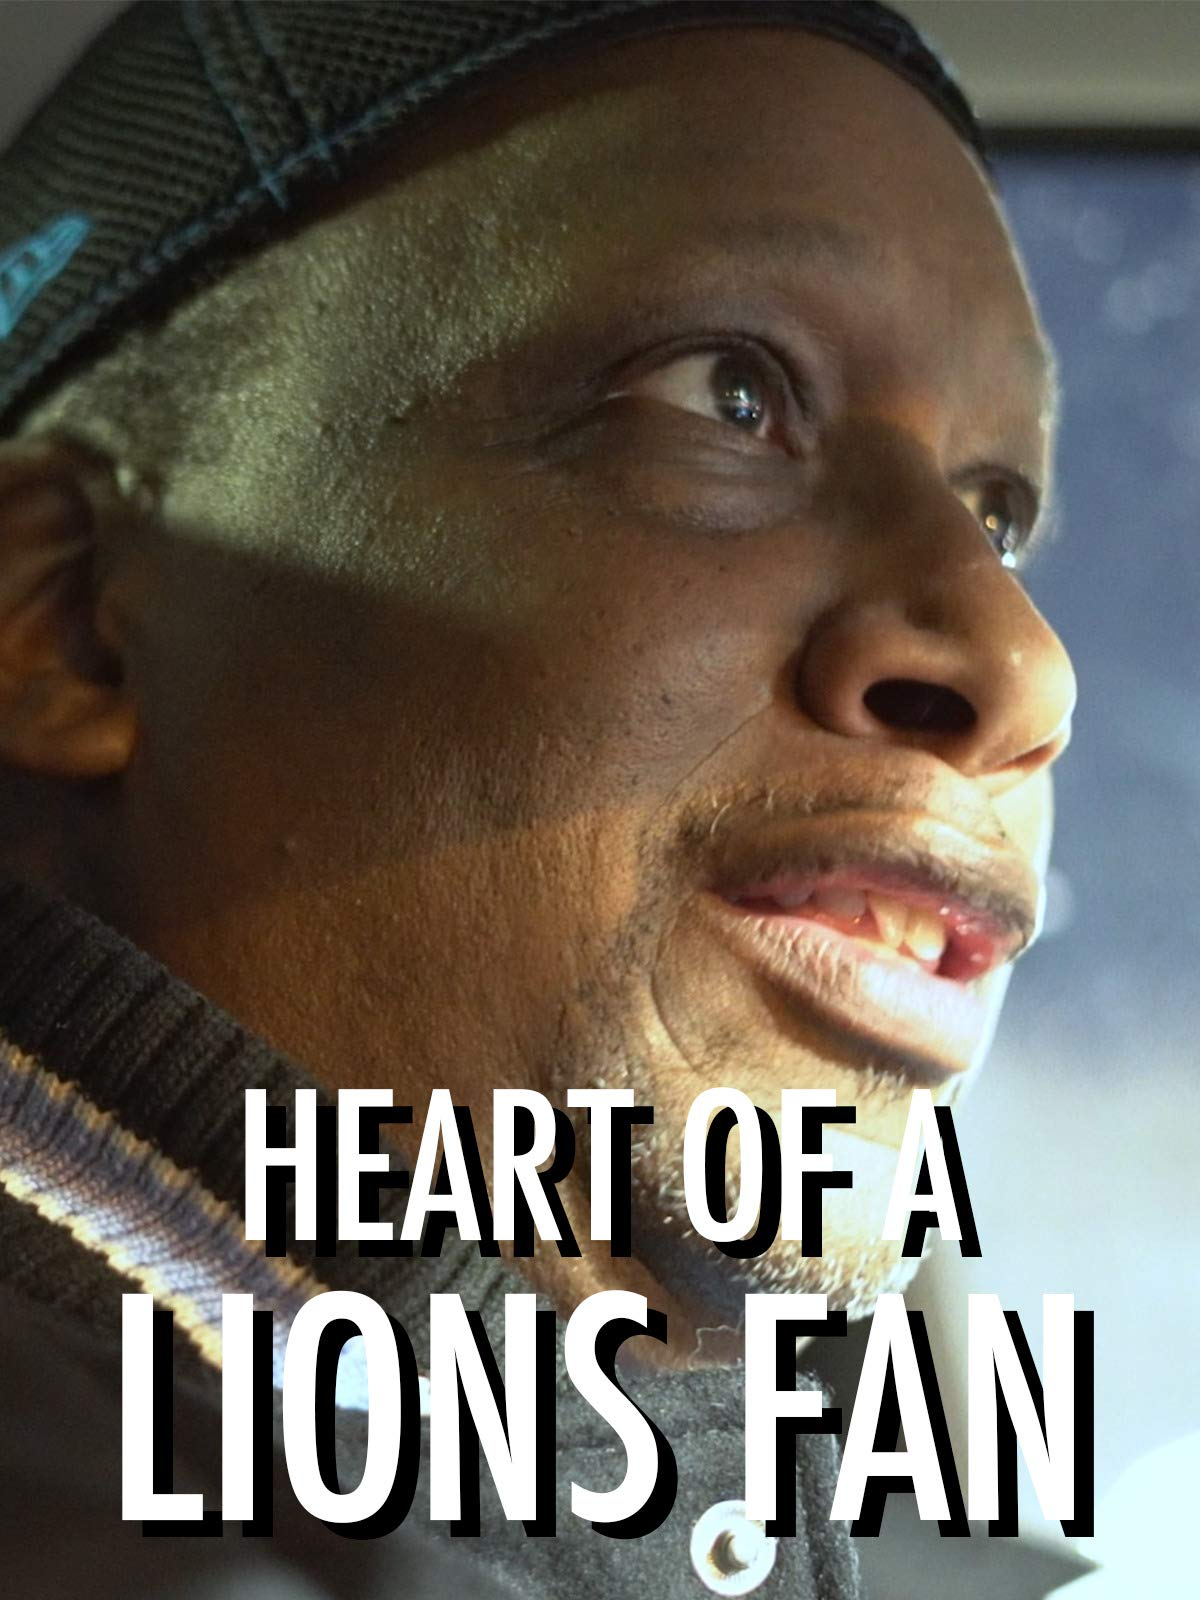 The Heart of a Lions Fan